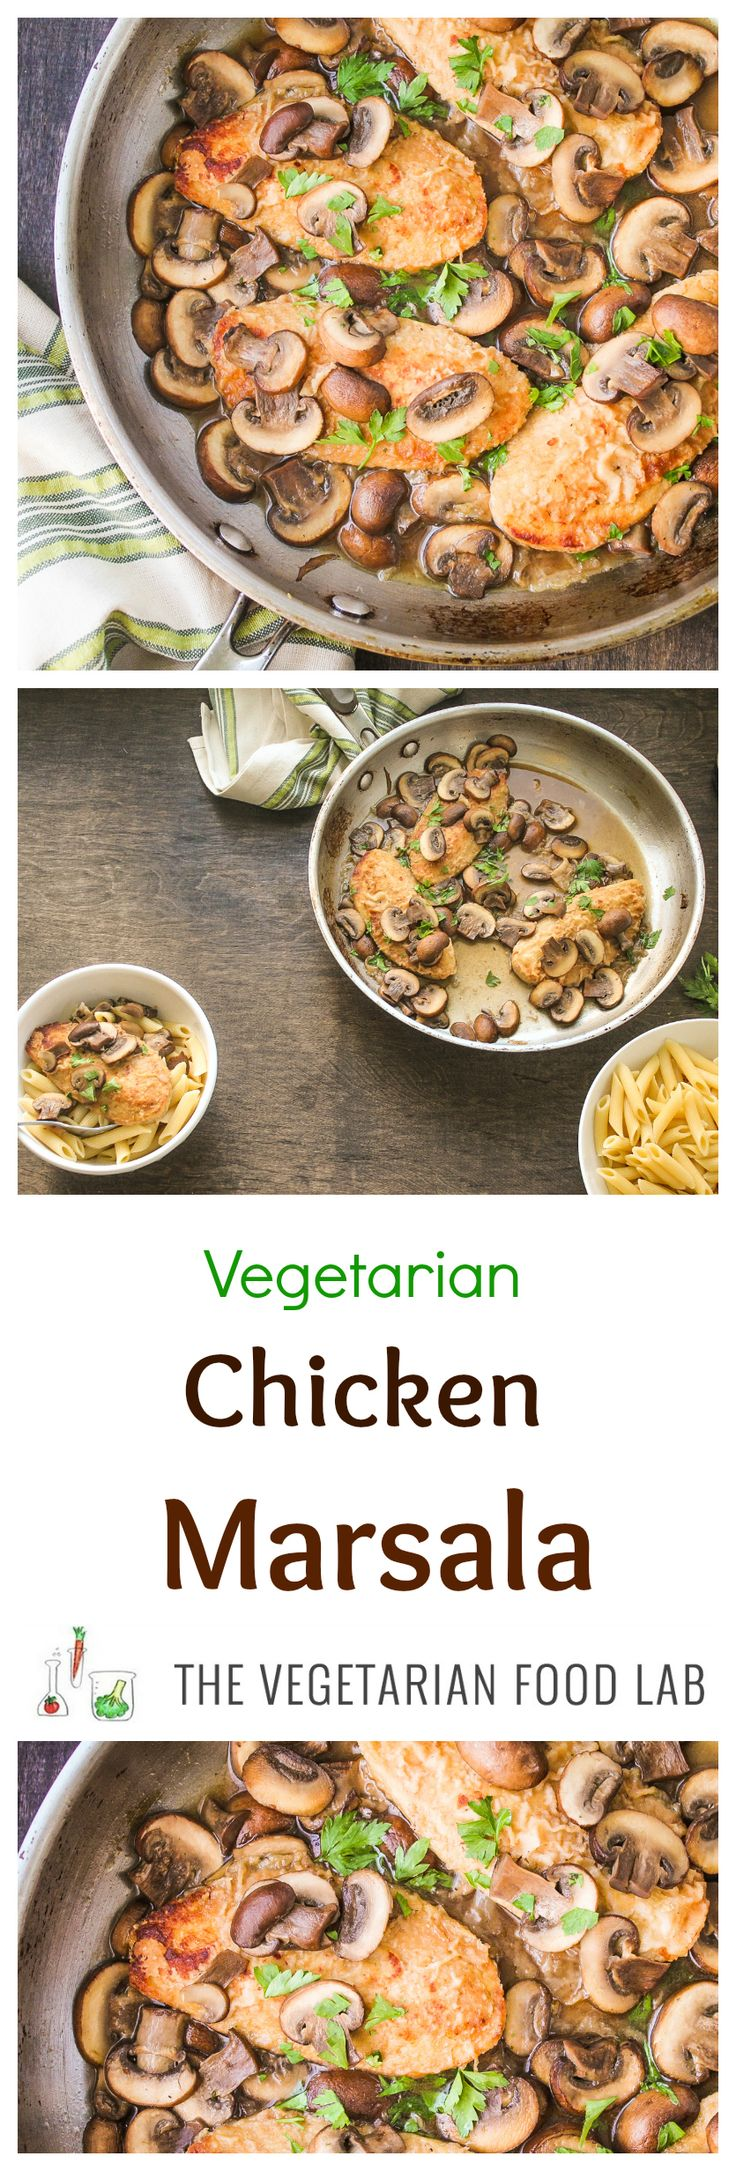 Vegetarian Chicken Marsala. Yummy, saucy and savory, just like the Italian favorite, without the meat.